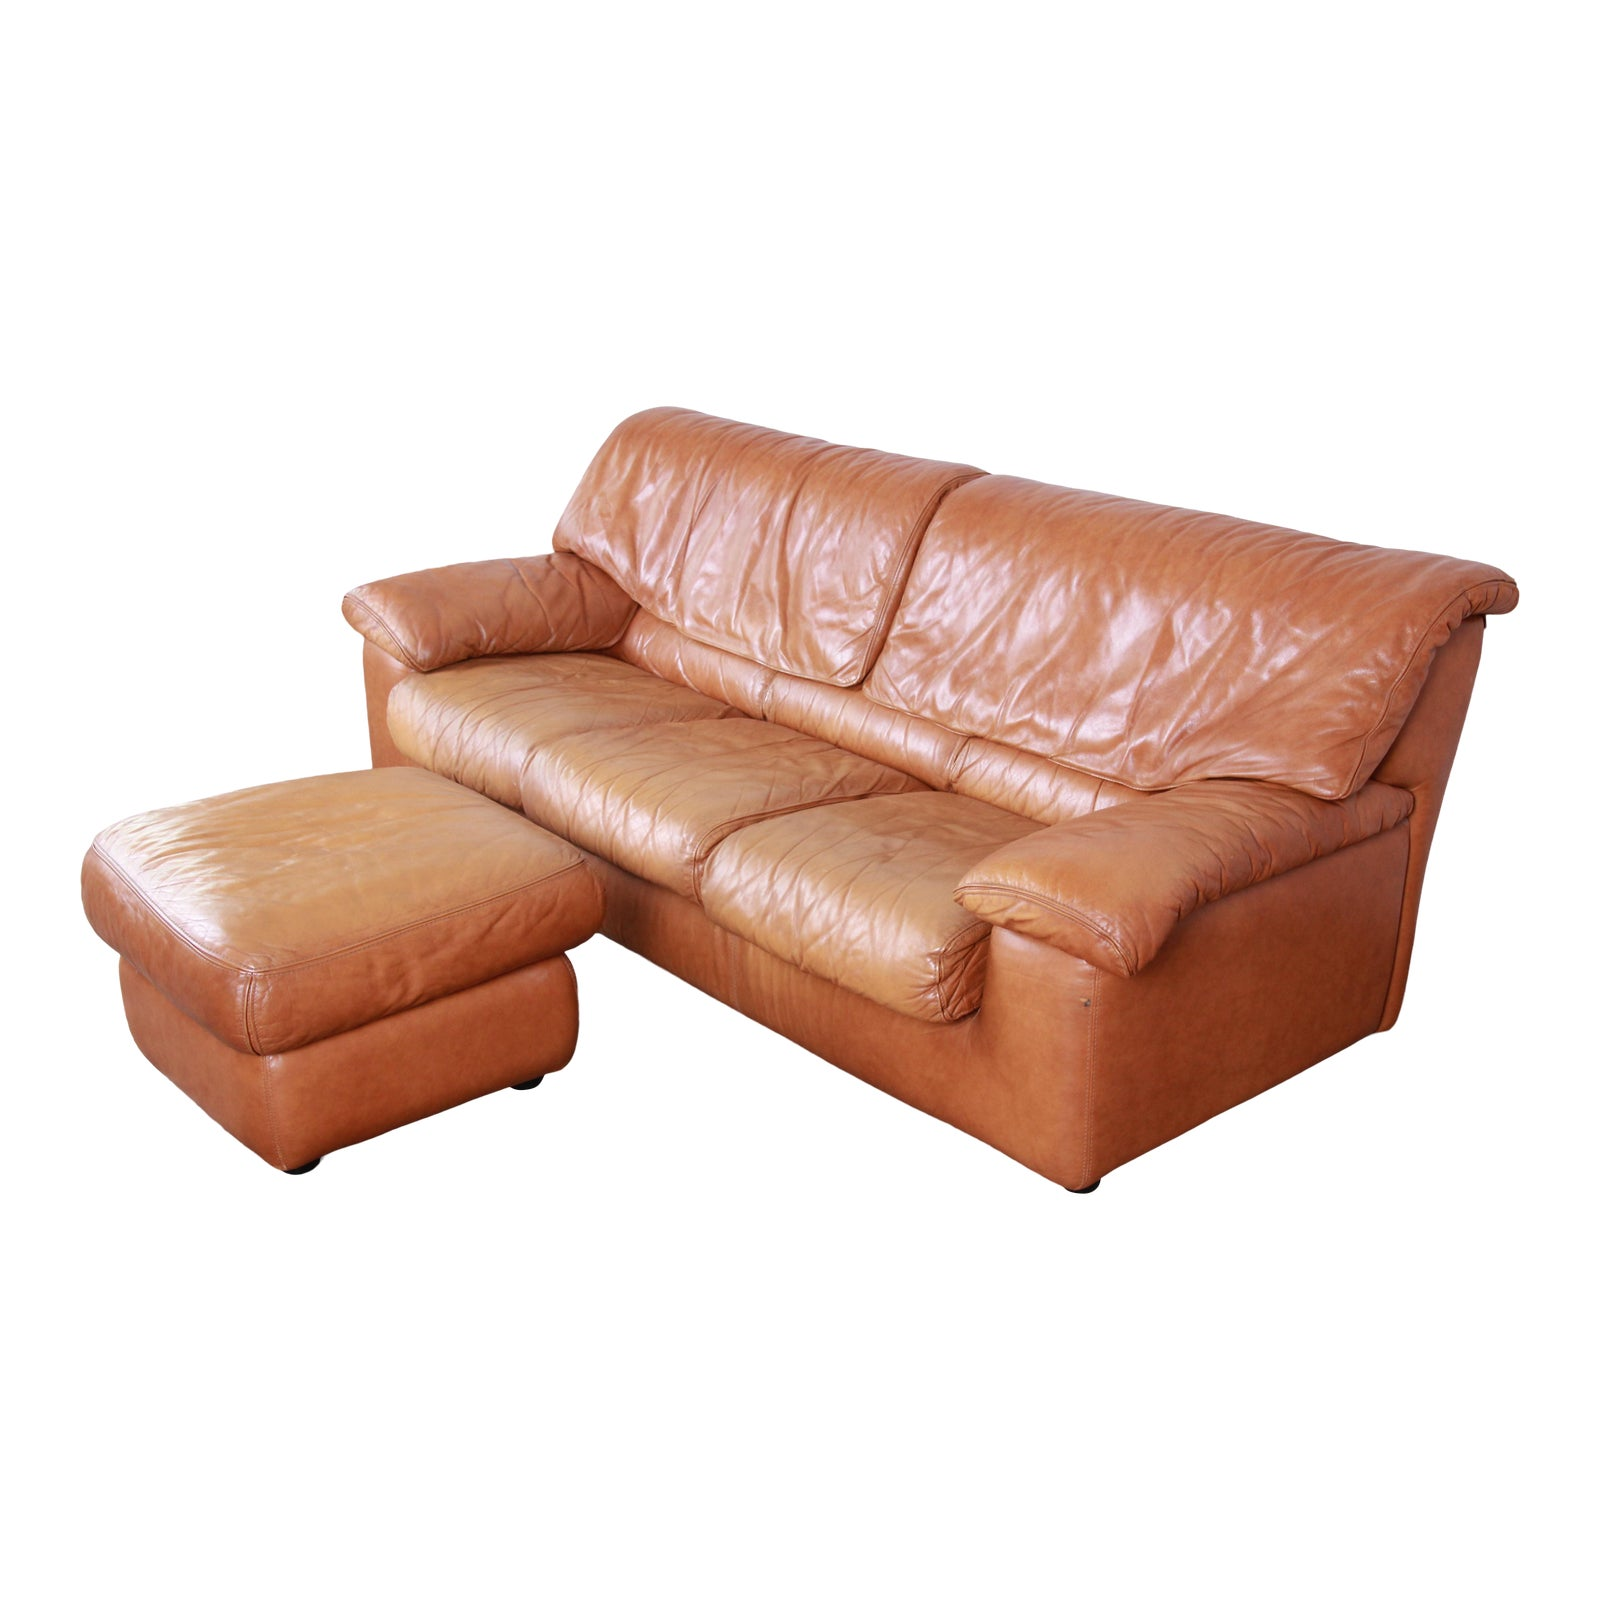 Roche Bobois Modern Brown Leather Sofa and Ottoman, France, 1970s